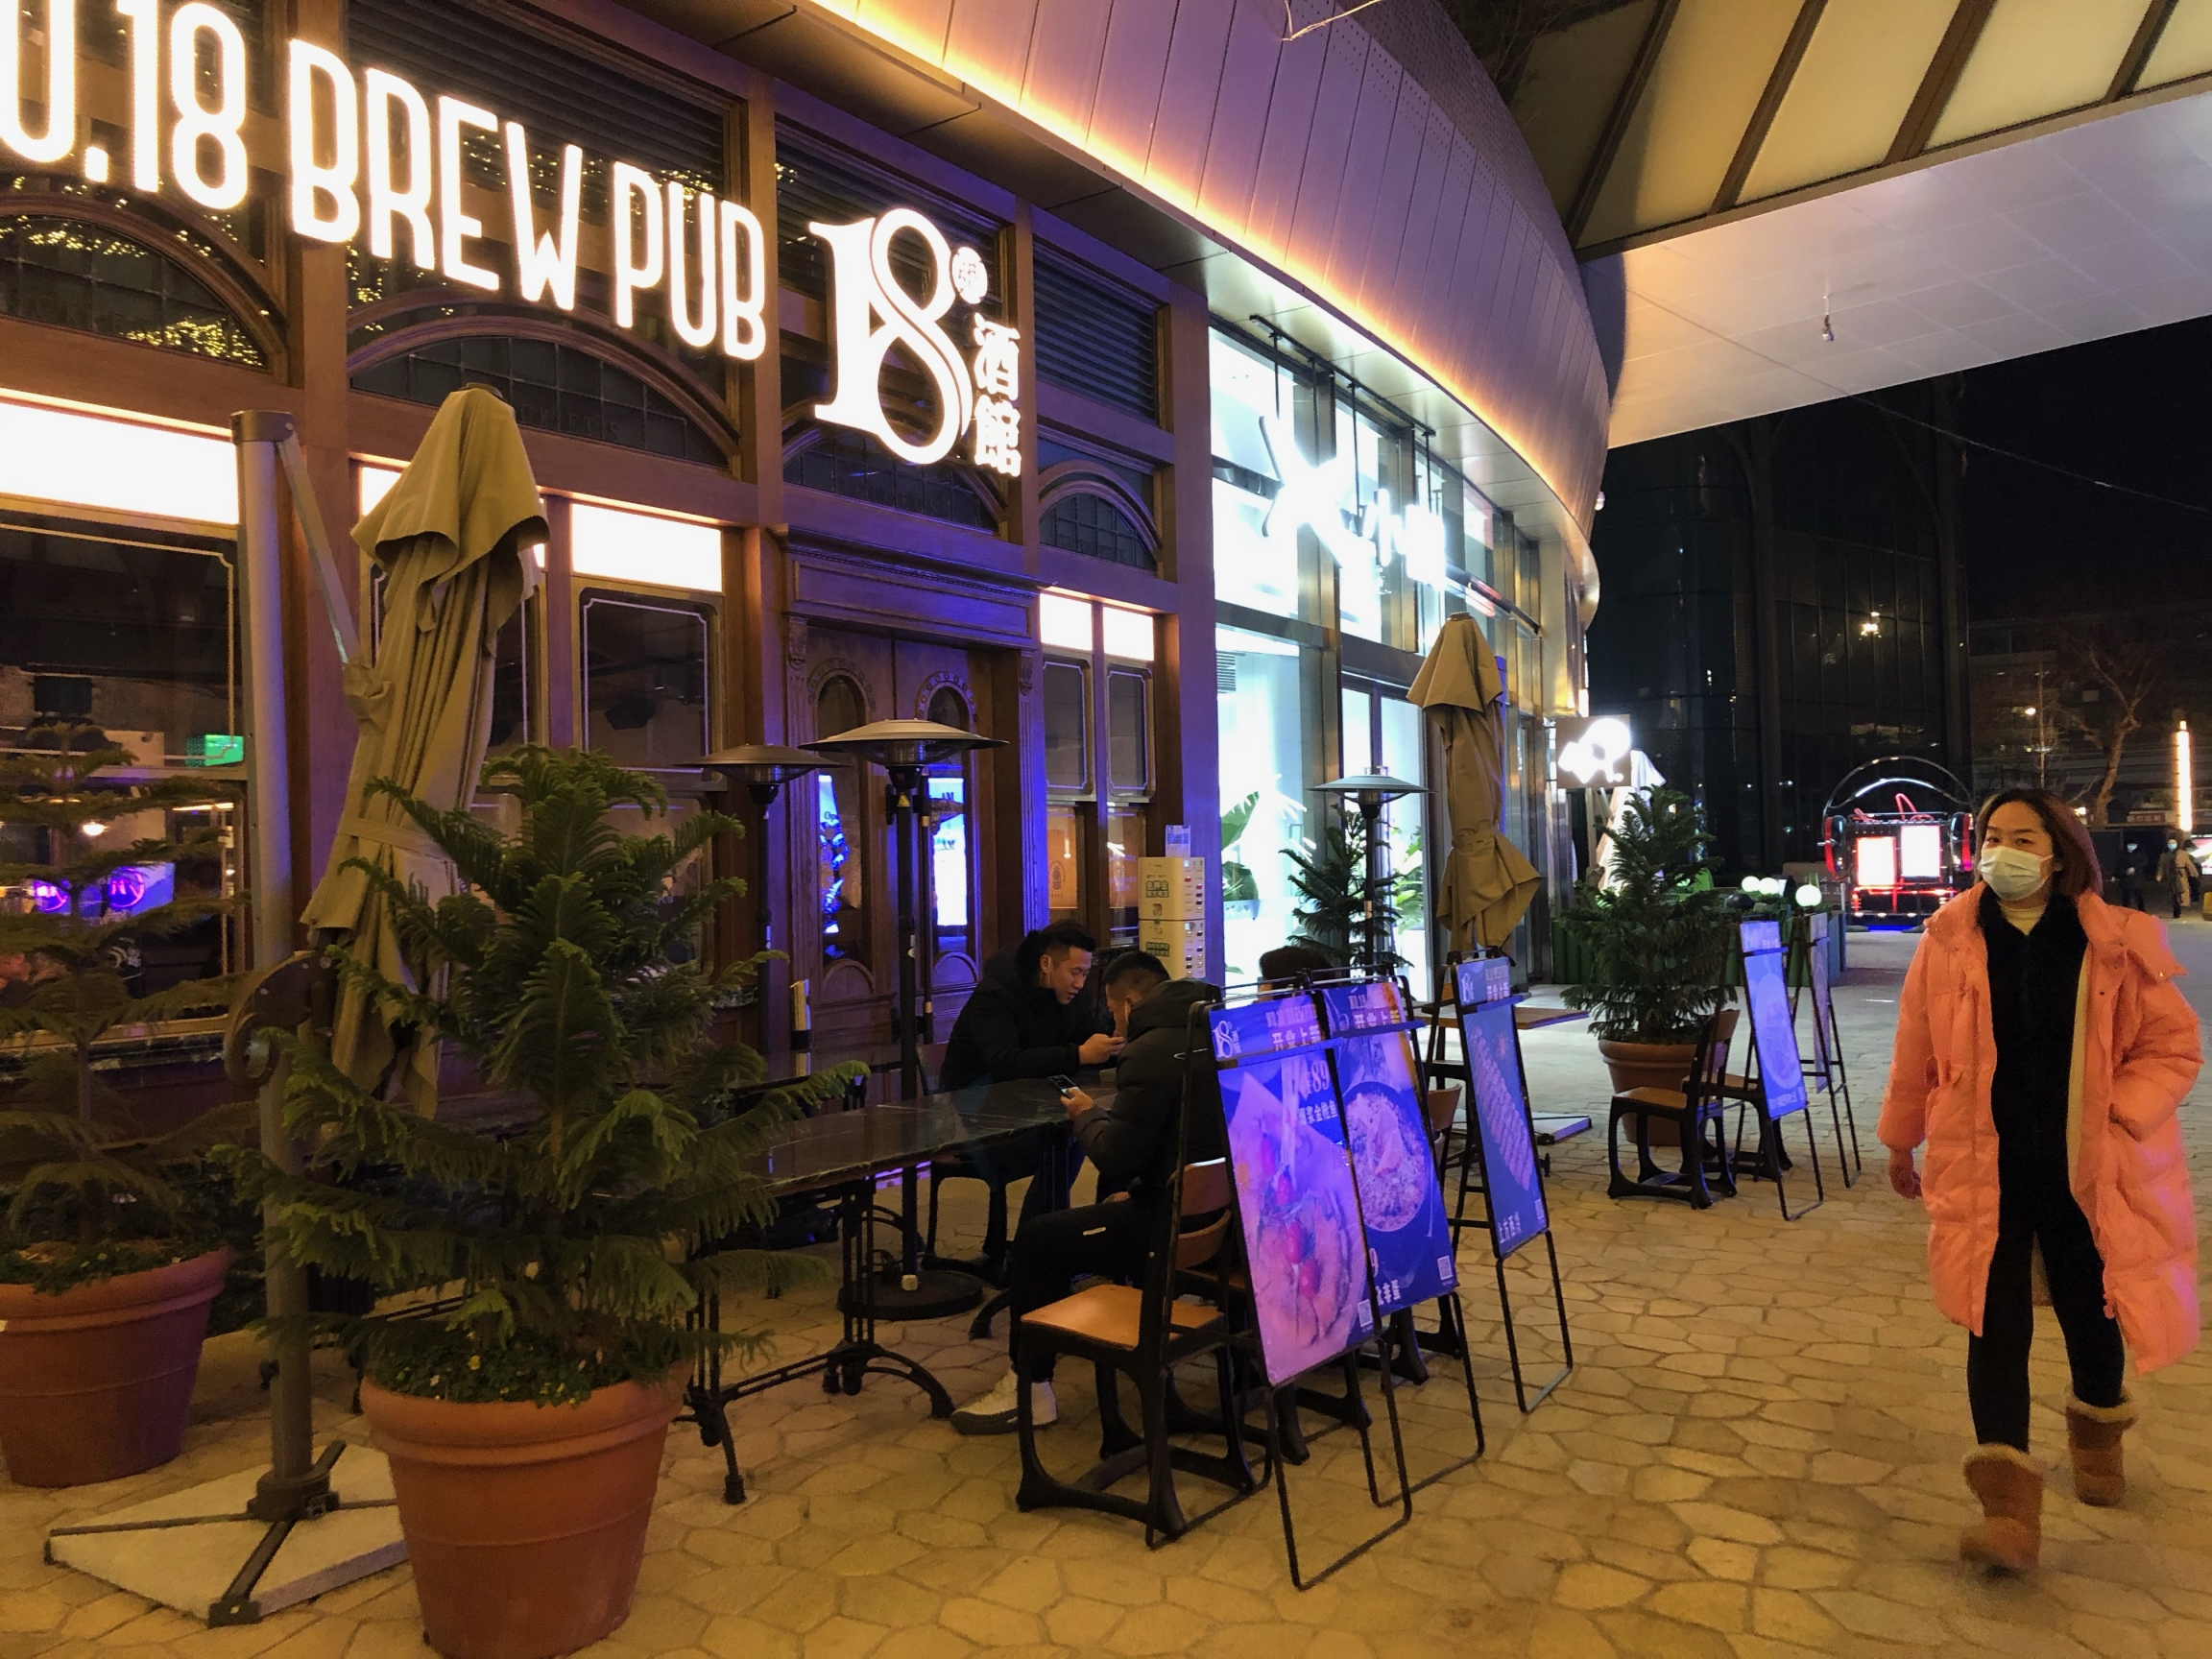 A new brewpub opens in Wuhan.